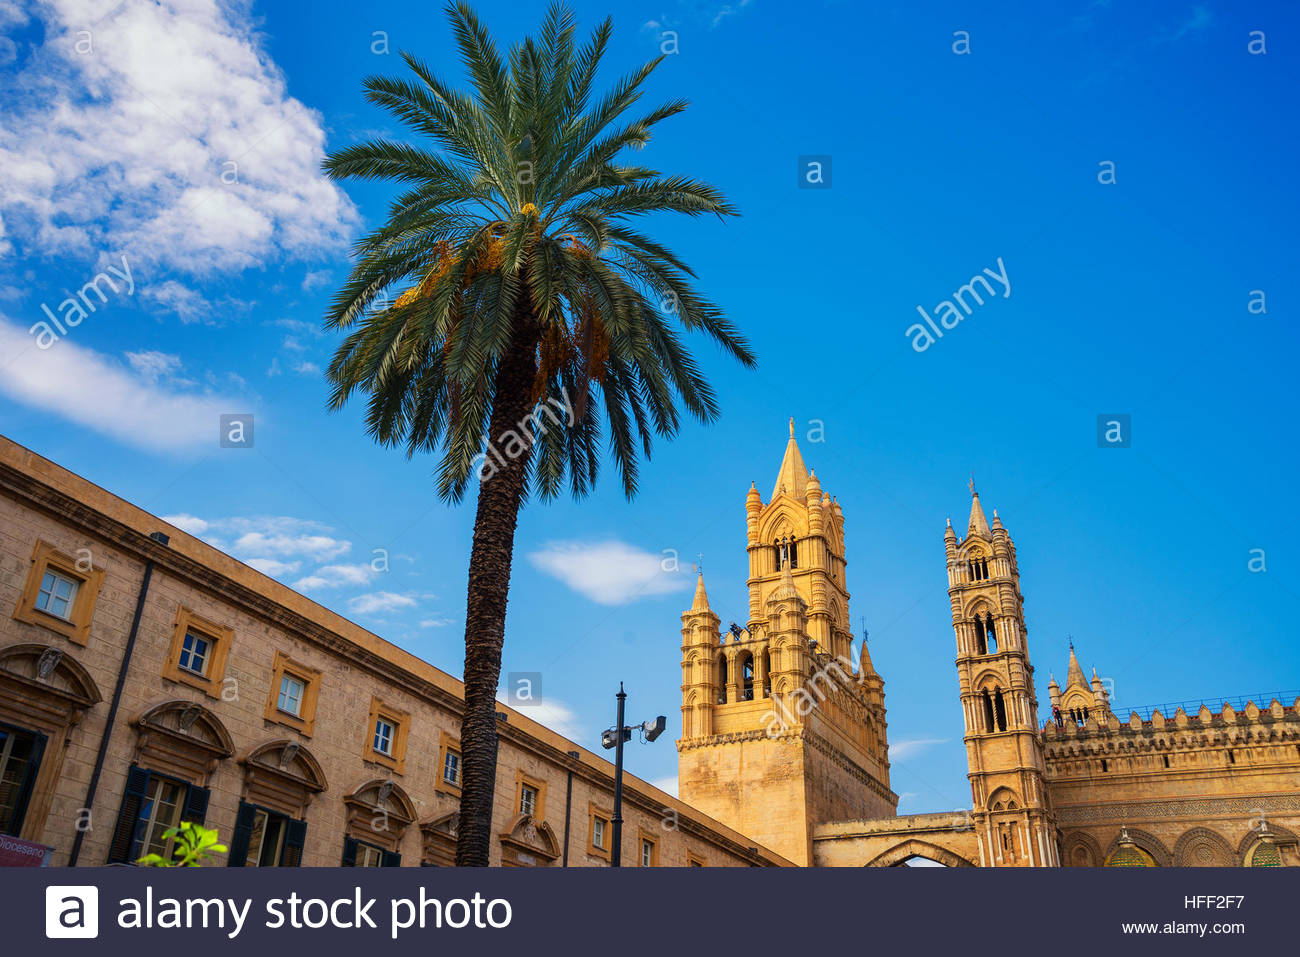 Palermo Cathedral, Palermo, Sicily, Italy, Europe, - Stock Image